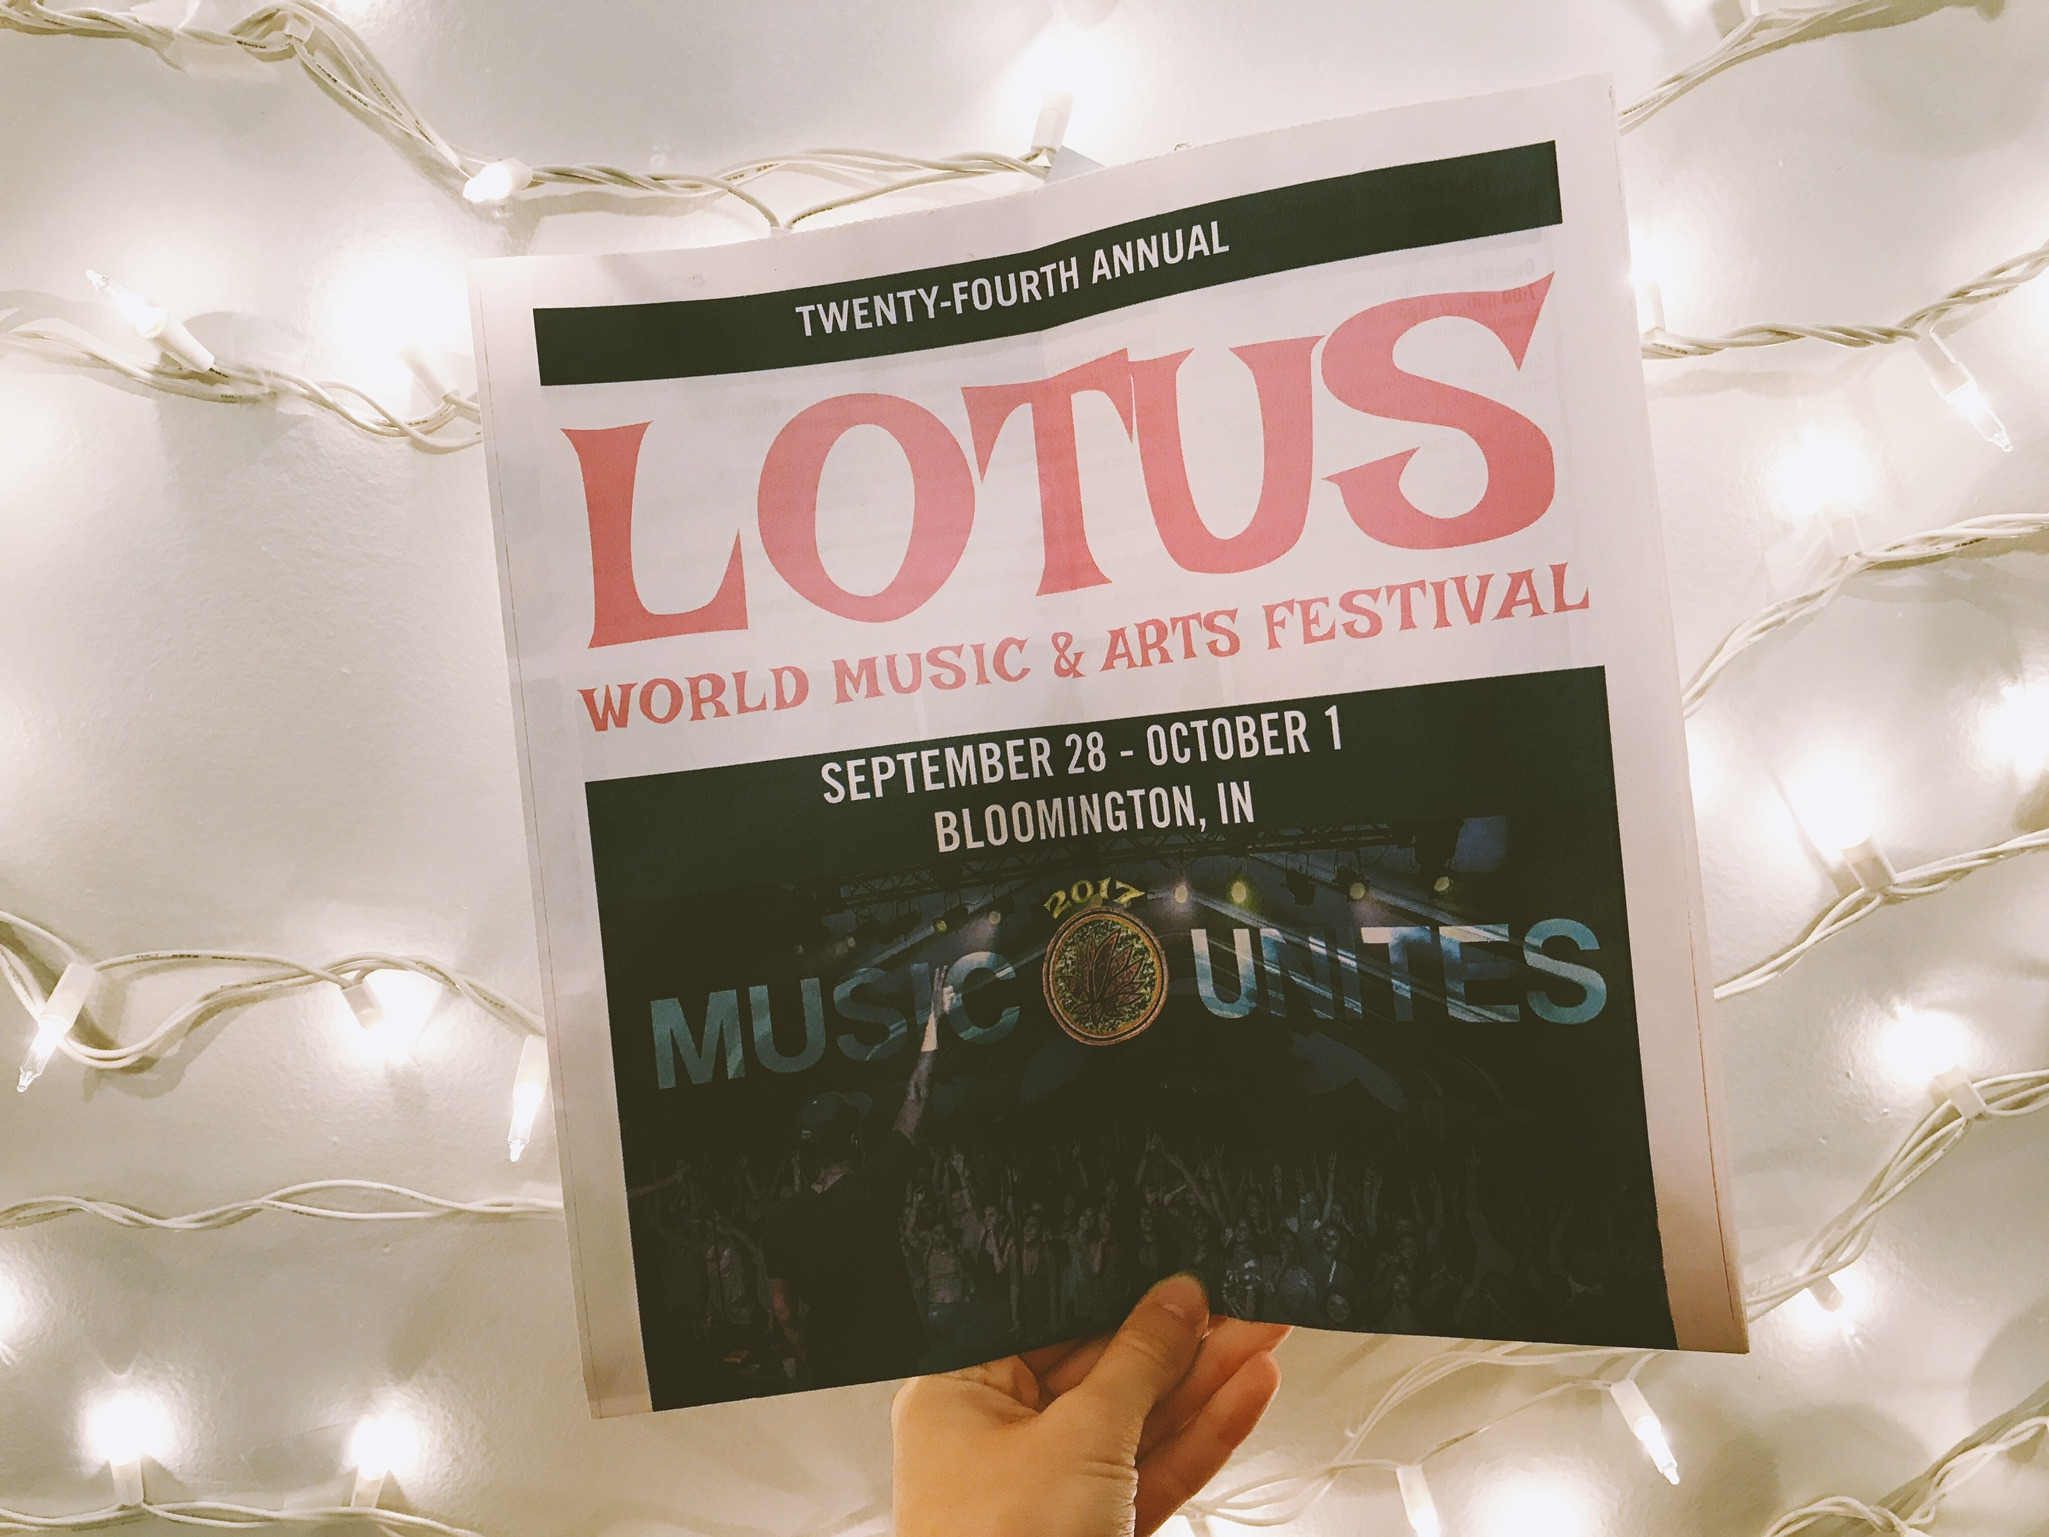 What You Need to Know to Have the Perfect Lotus Fest